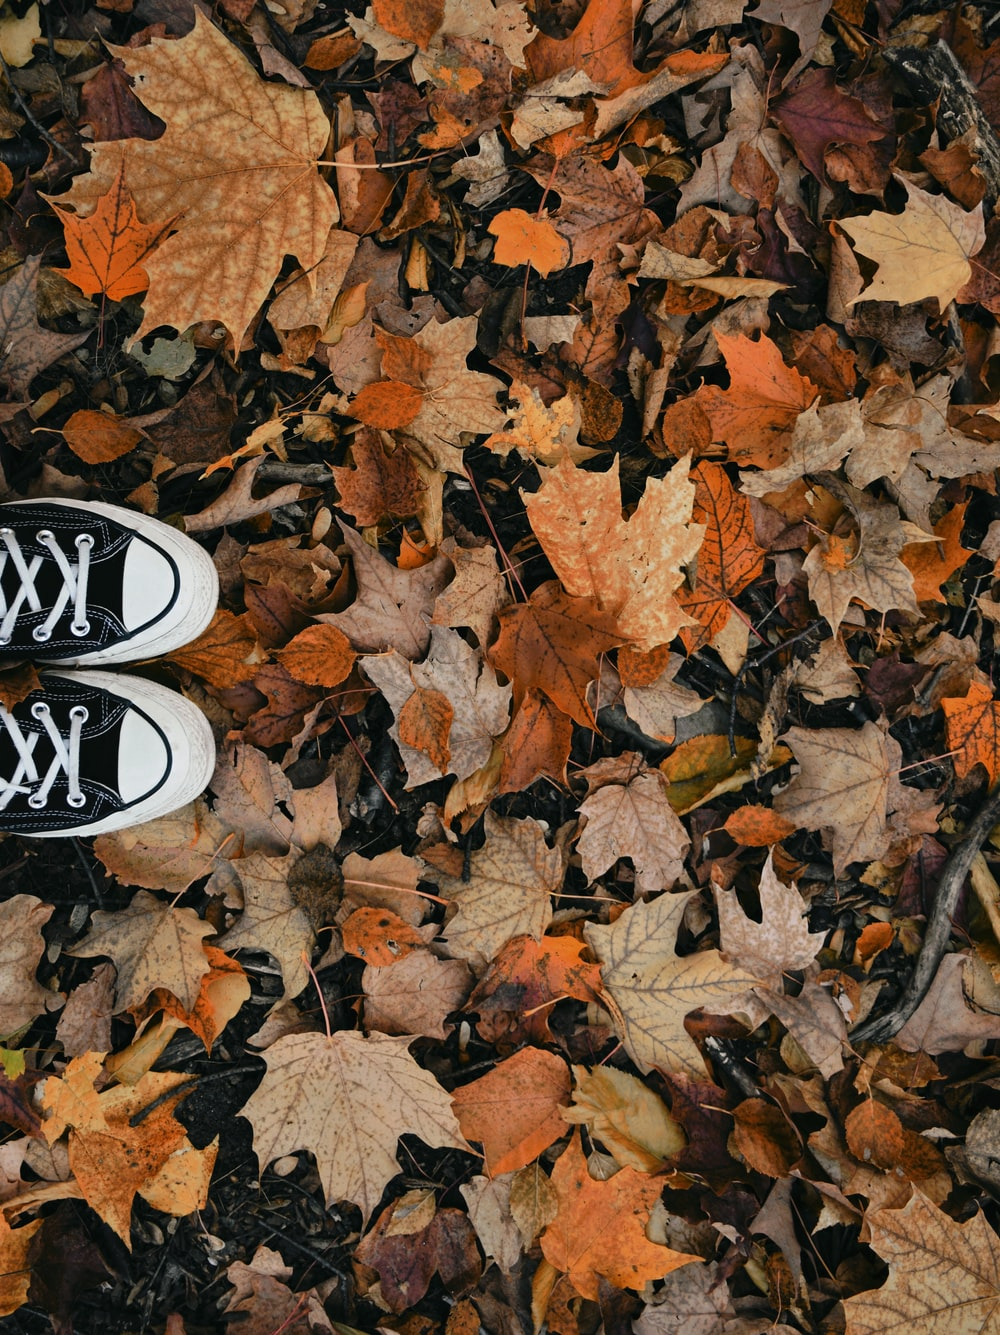 person wearing black and white sneakers standing on dried leaves